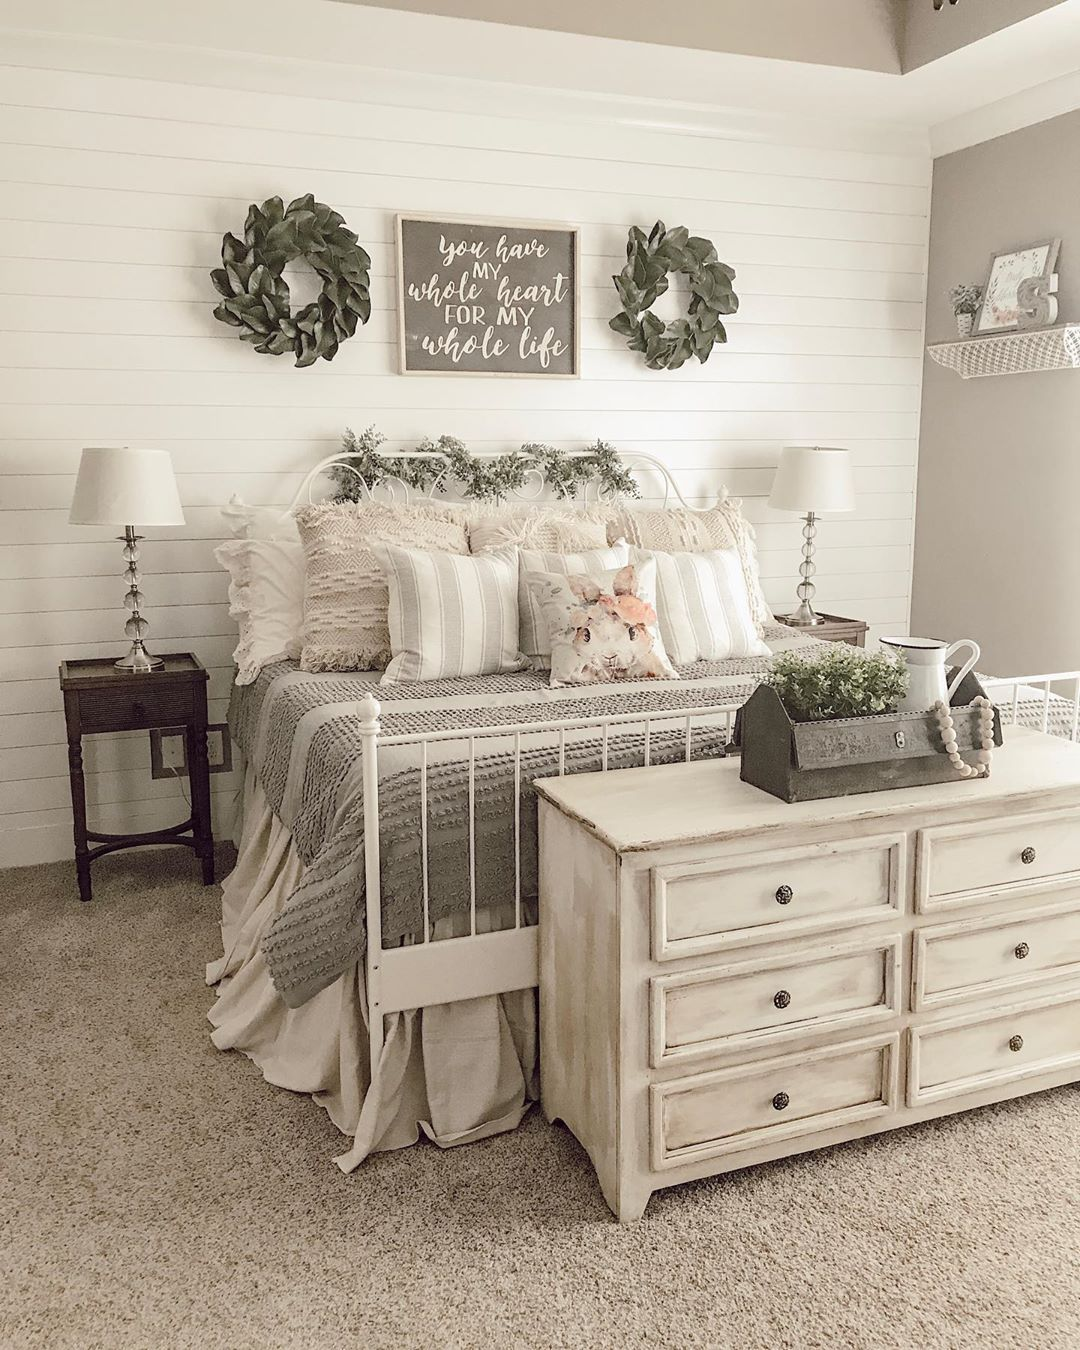 Are you guys loving this vintage bedroom by